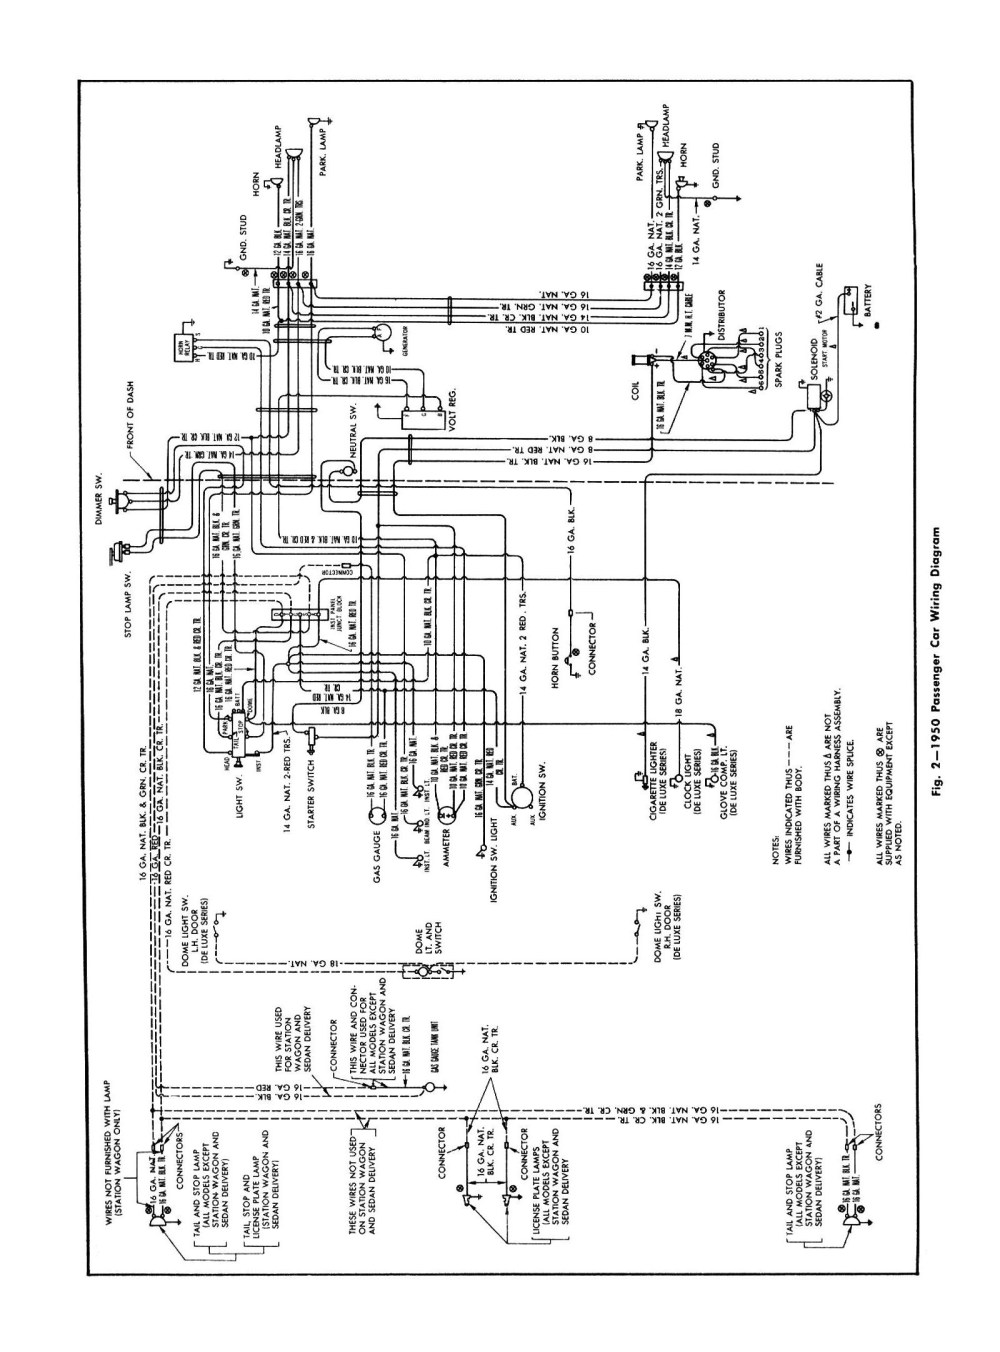 medium resolution of ignition wiring on a 1950 chevy wiring diagram third level chevy dome light wiring 1973 chevy ignition wiring